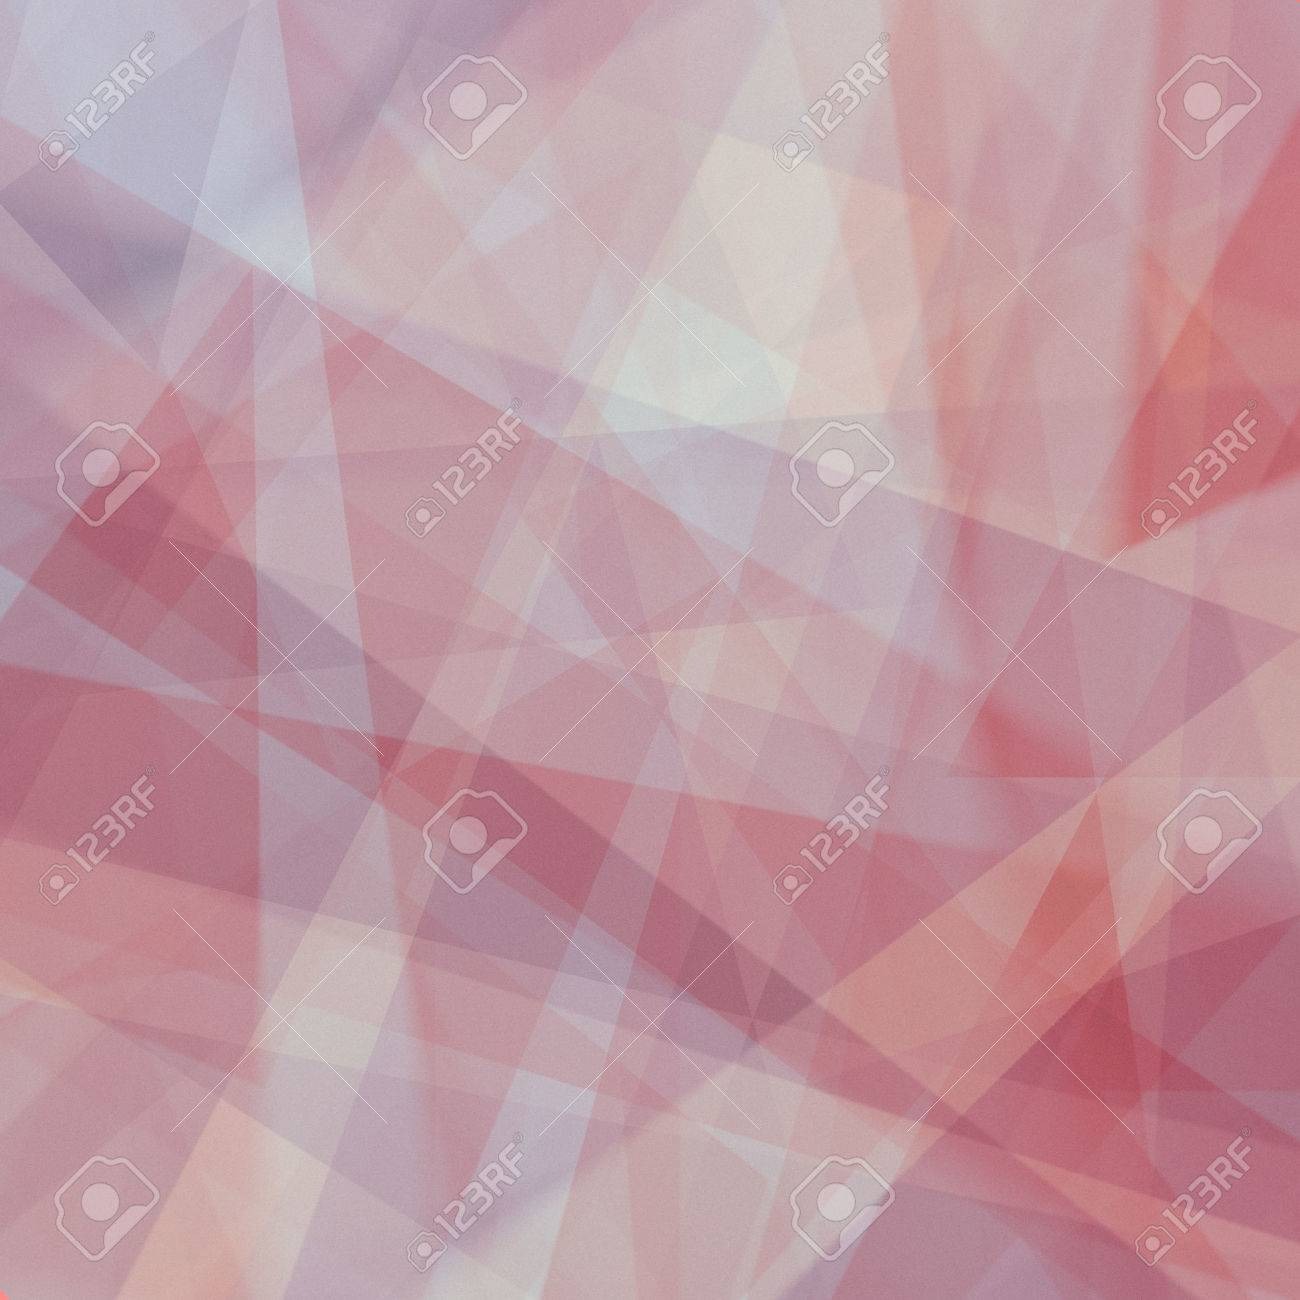 red white and blue abstract geometric background with angles, lines, triangles, and rectangles in random patterns, soft faded textures with light streaks, cool shapes overlays or double exposure - 56270012